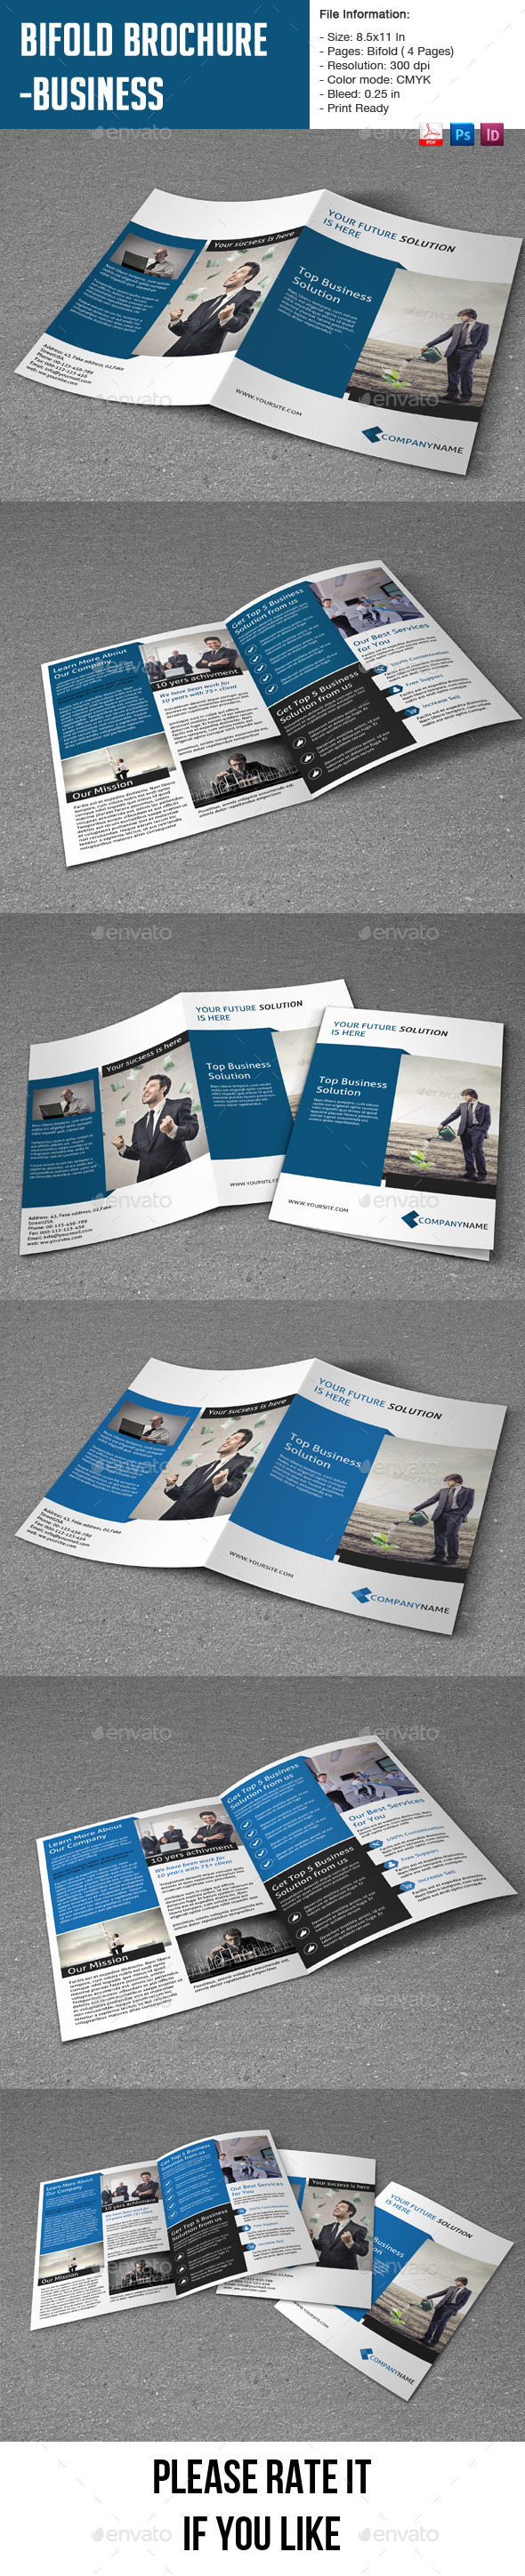 GraphicRiver Bifold Brochure for Business-4 pages 9189541